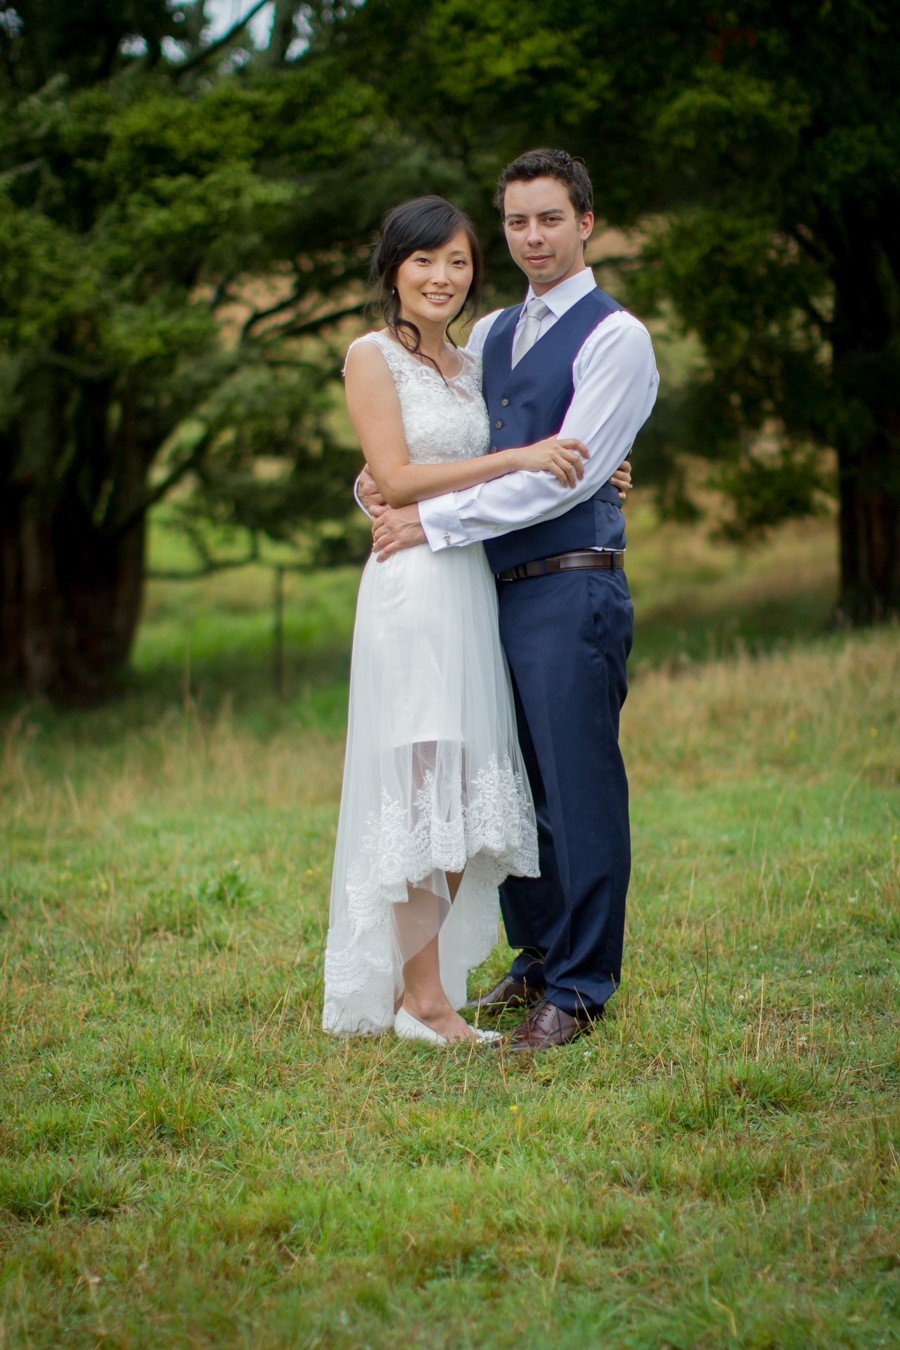 maungaturoto_wedding_nz_photographer_auckland-599